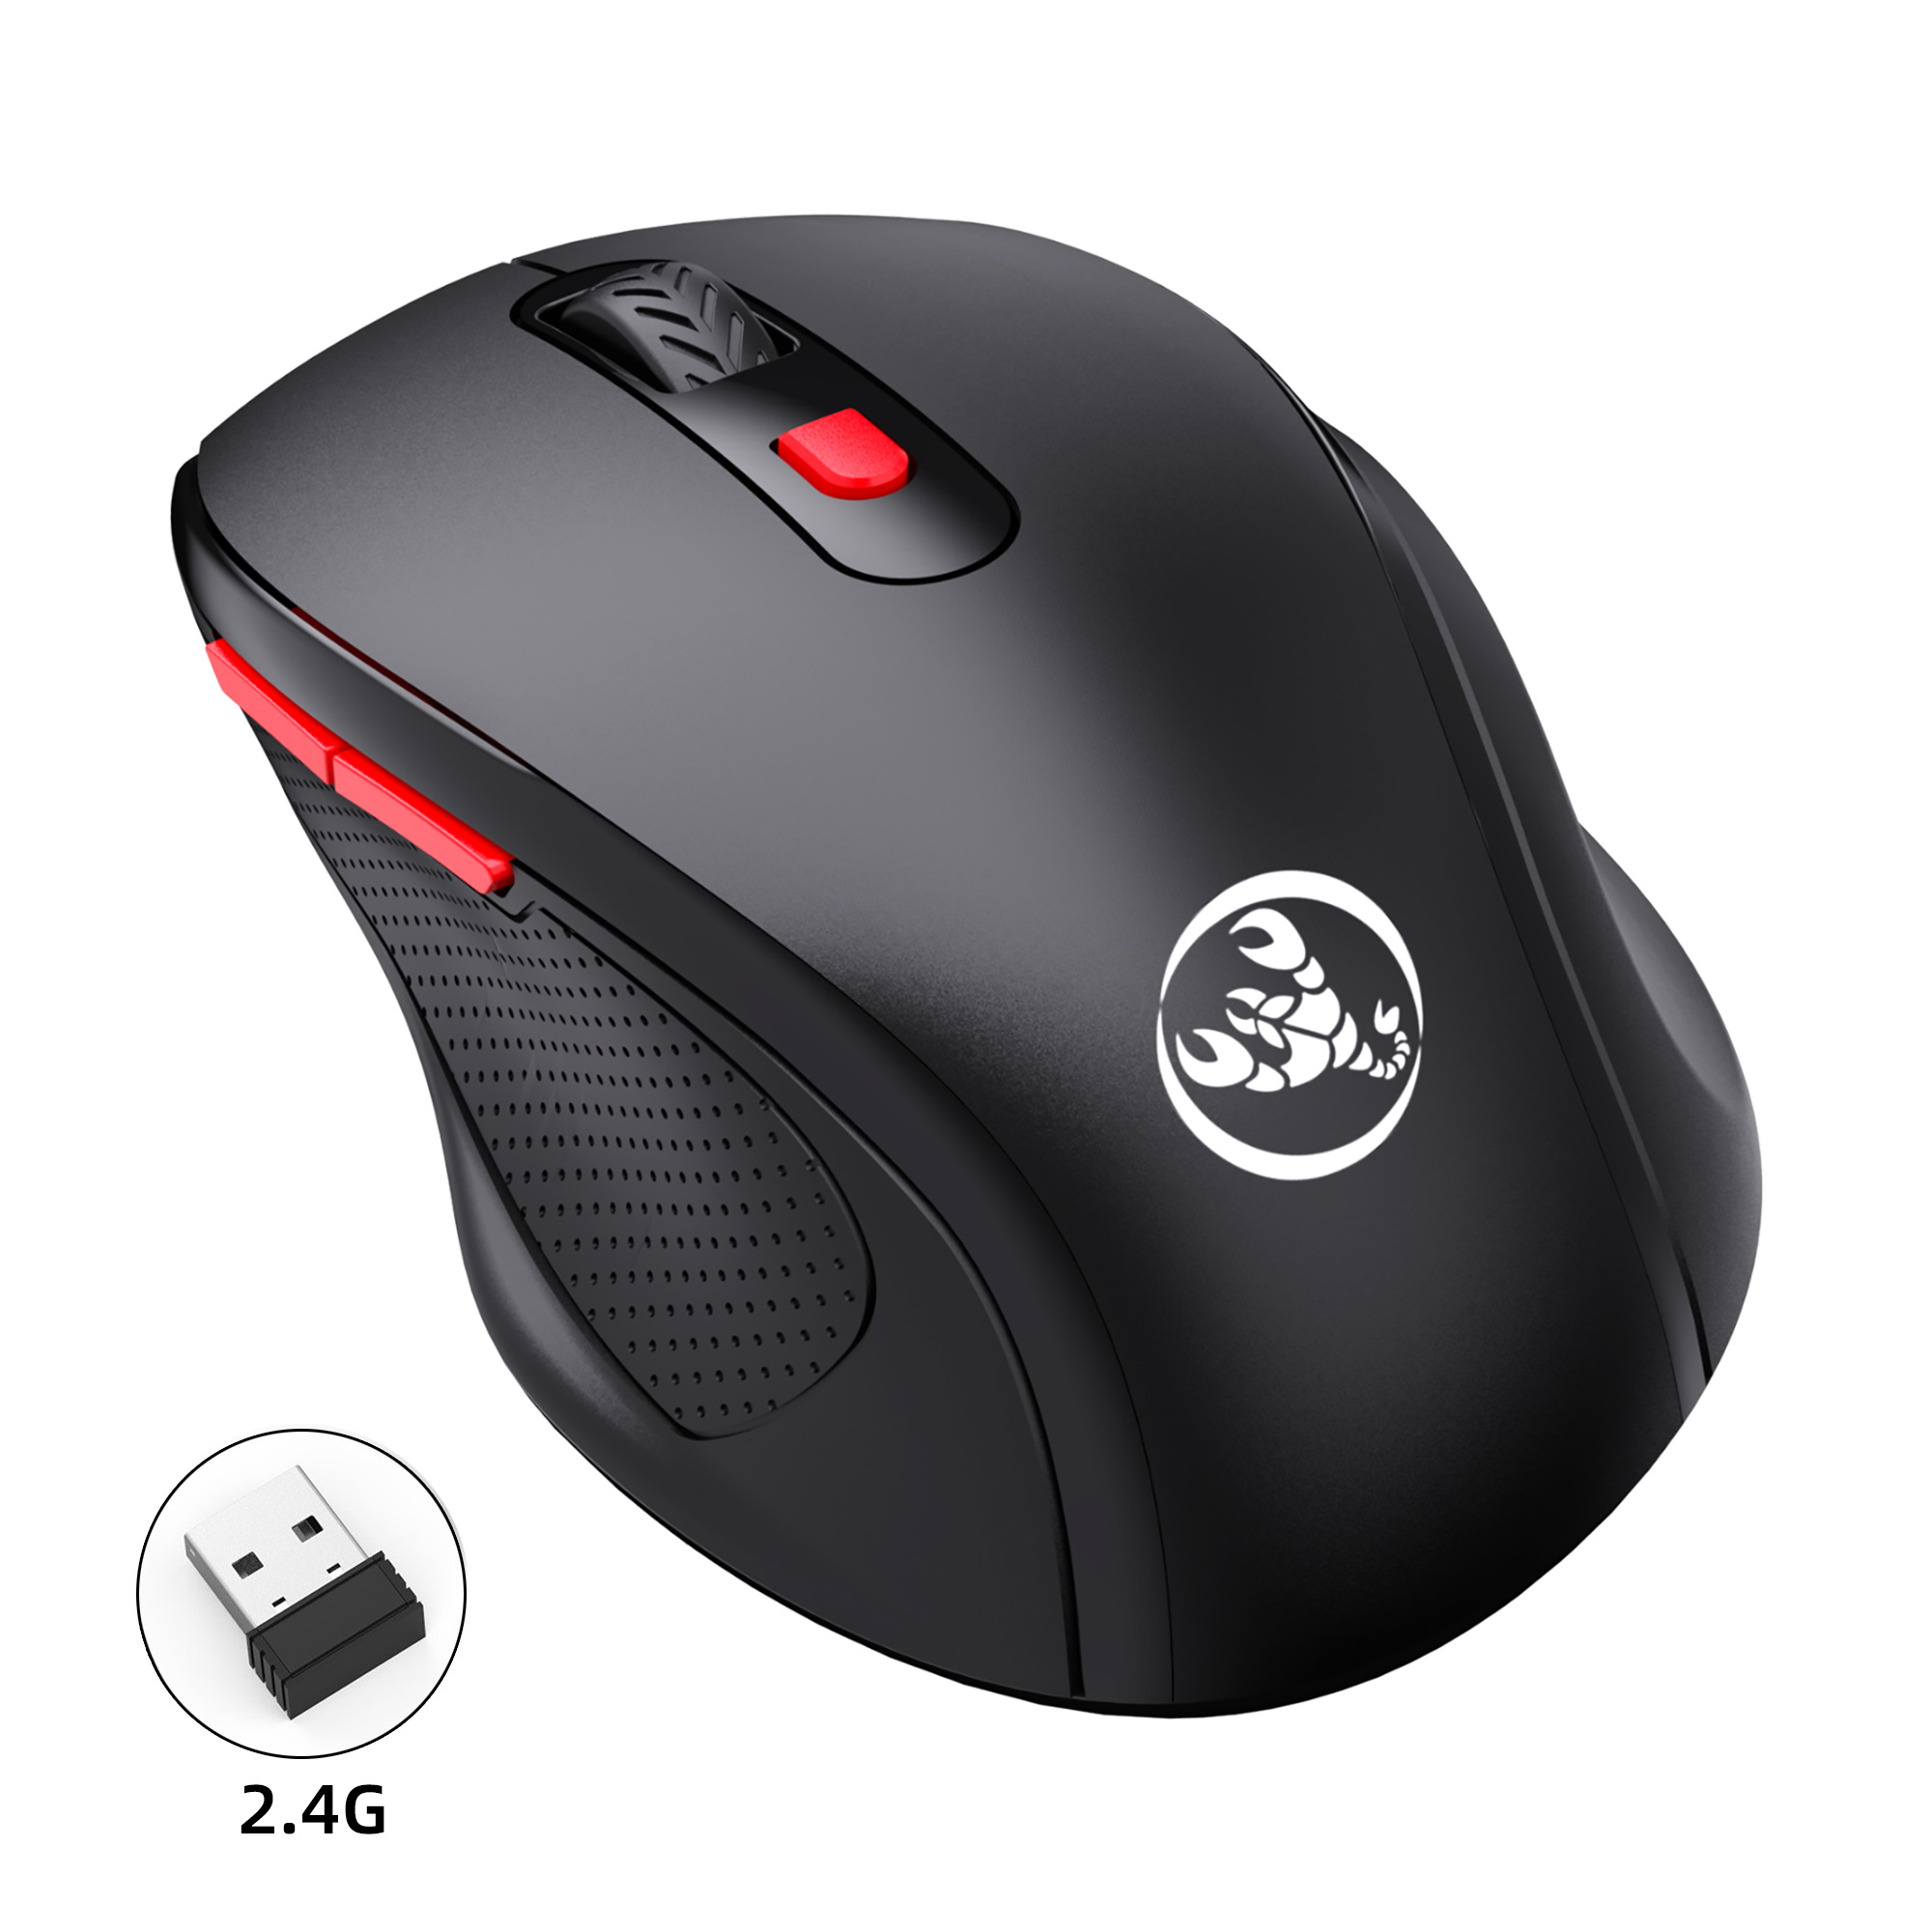 T67 2.4g Office Usb Wireless Mouse 6 Buttons 1600dpi Adjustable For Notebook Desktop Computer Mouse Bluetooth